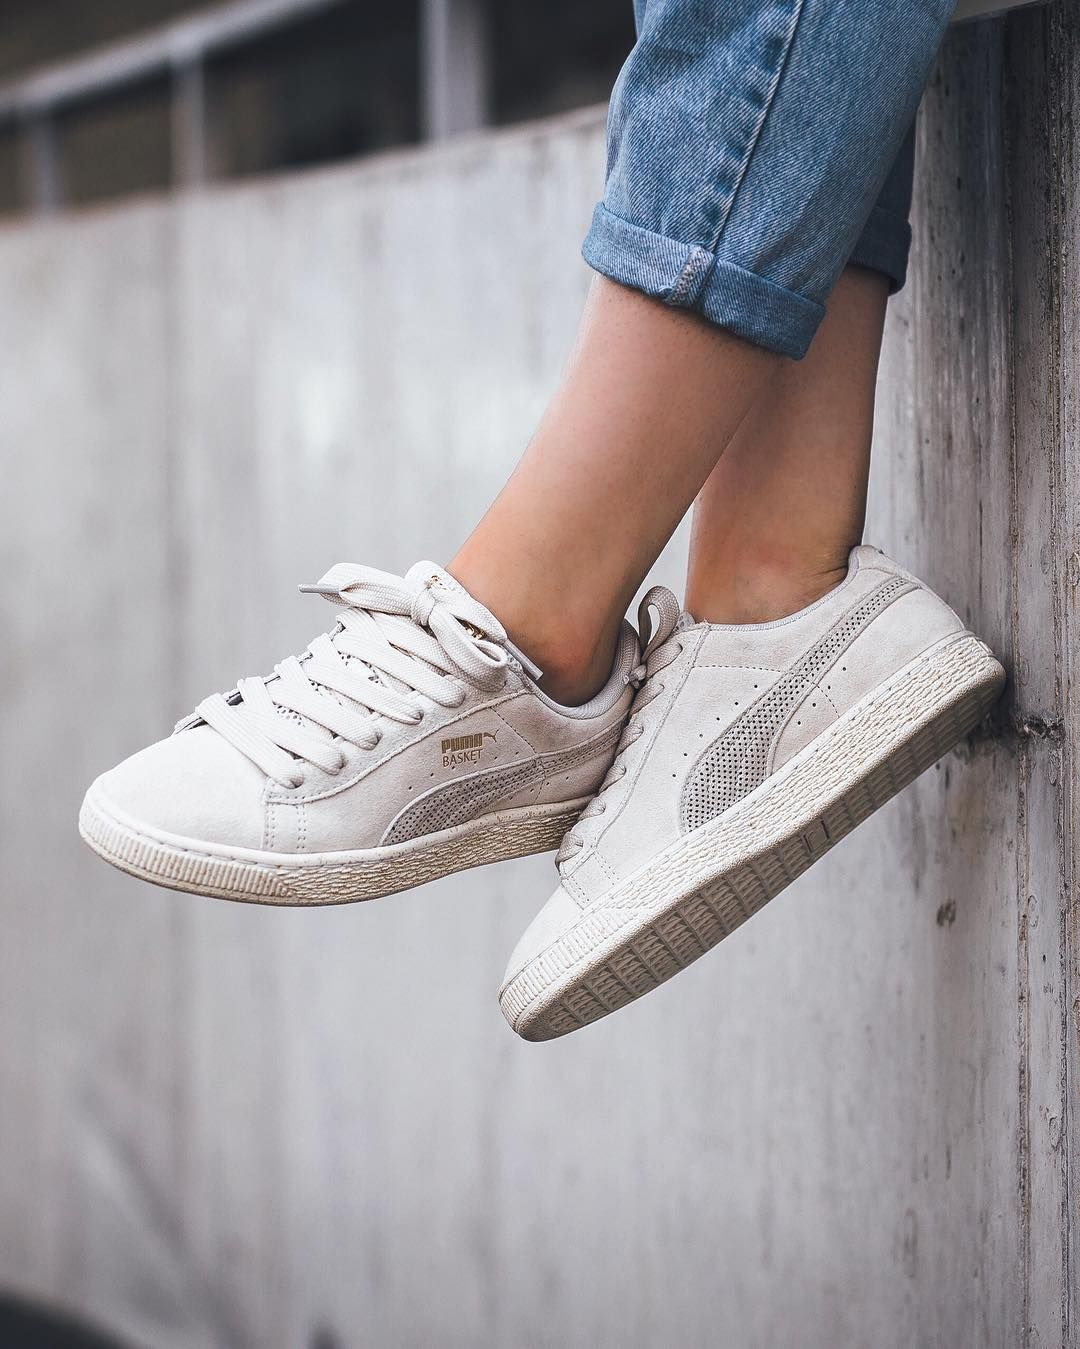 Careaux x Puma Suede Whisper White Whisper White available